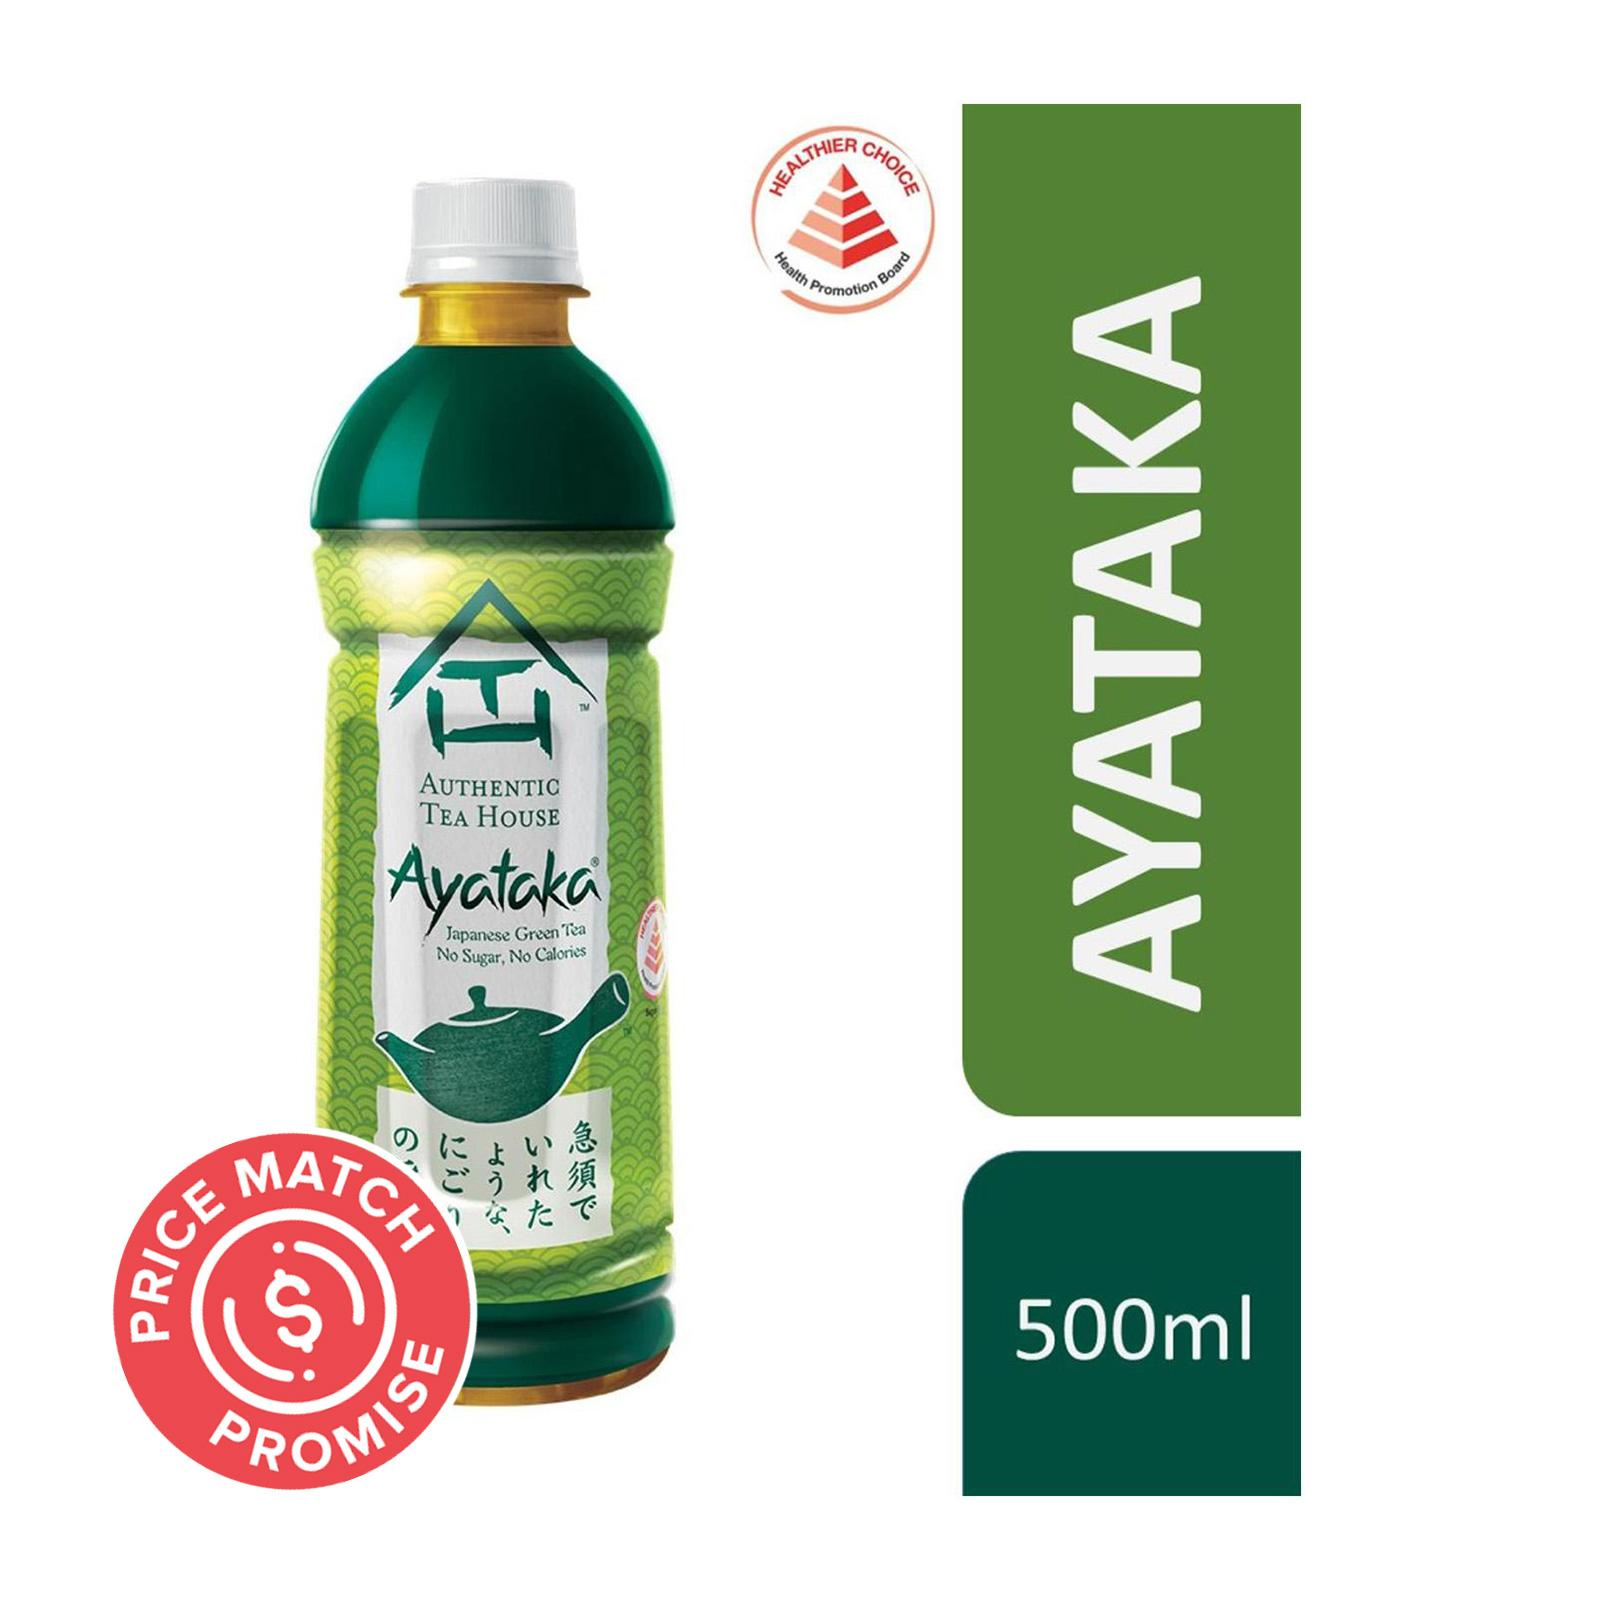 Authentic Tea House Ayataka No Sugar Japanese Green Tea (500ml)